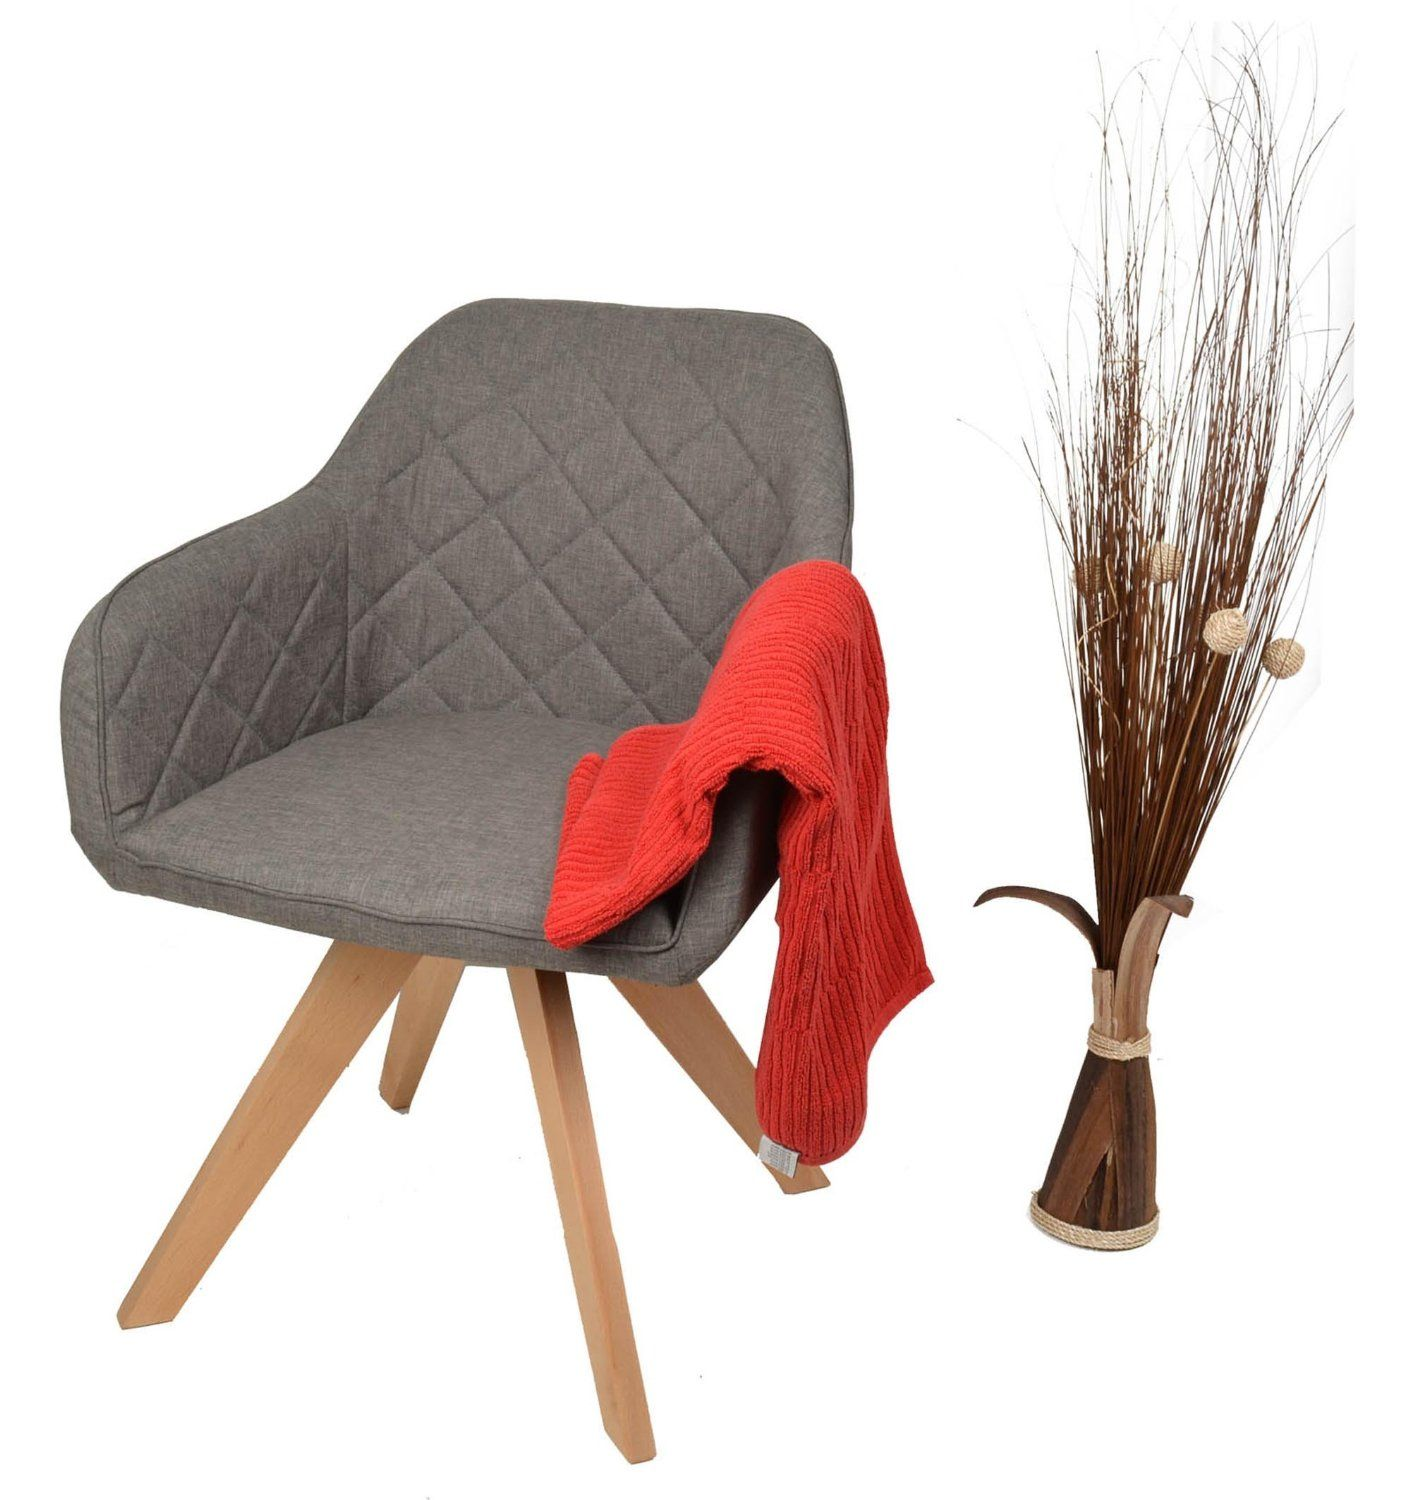 Sessel Bunt Amazon Ts Ideen Lounge Design Sessel Stuhl Clubsessel Holz Anthrazit